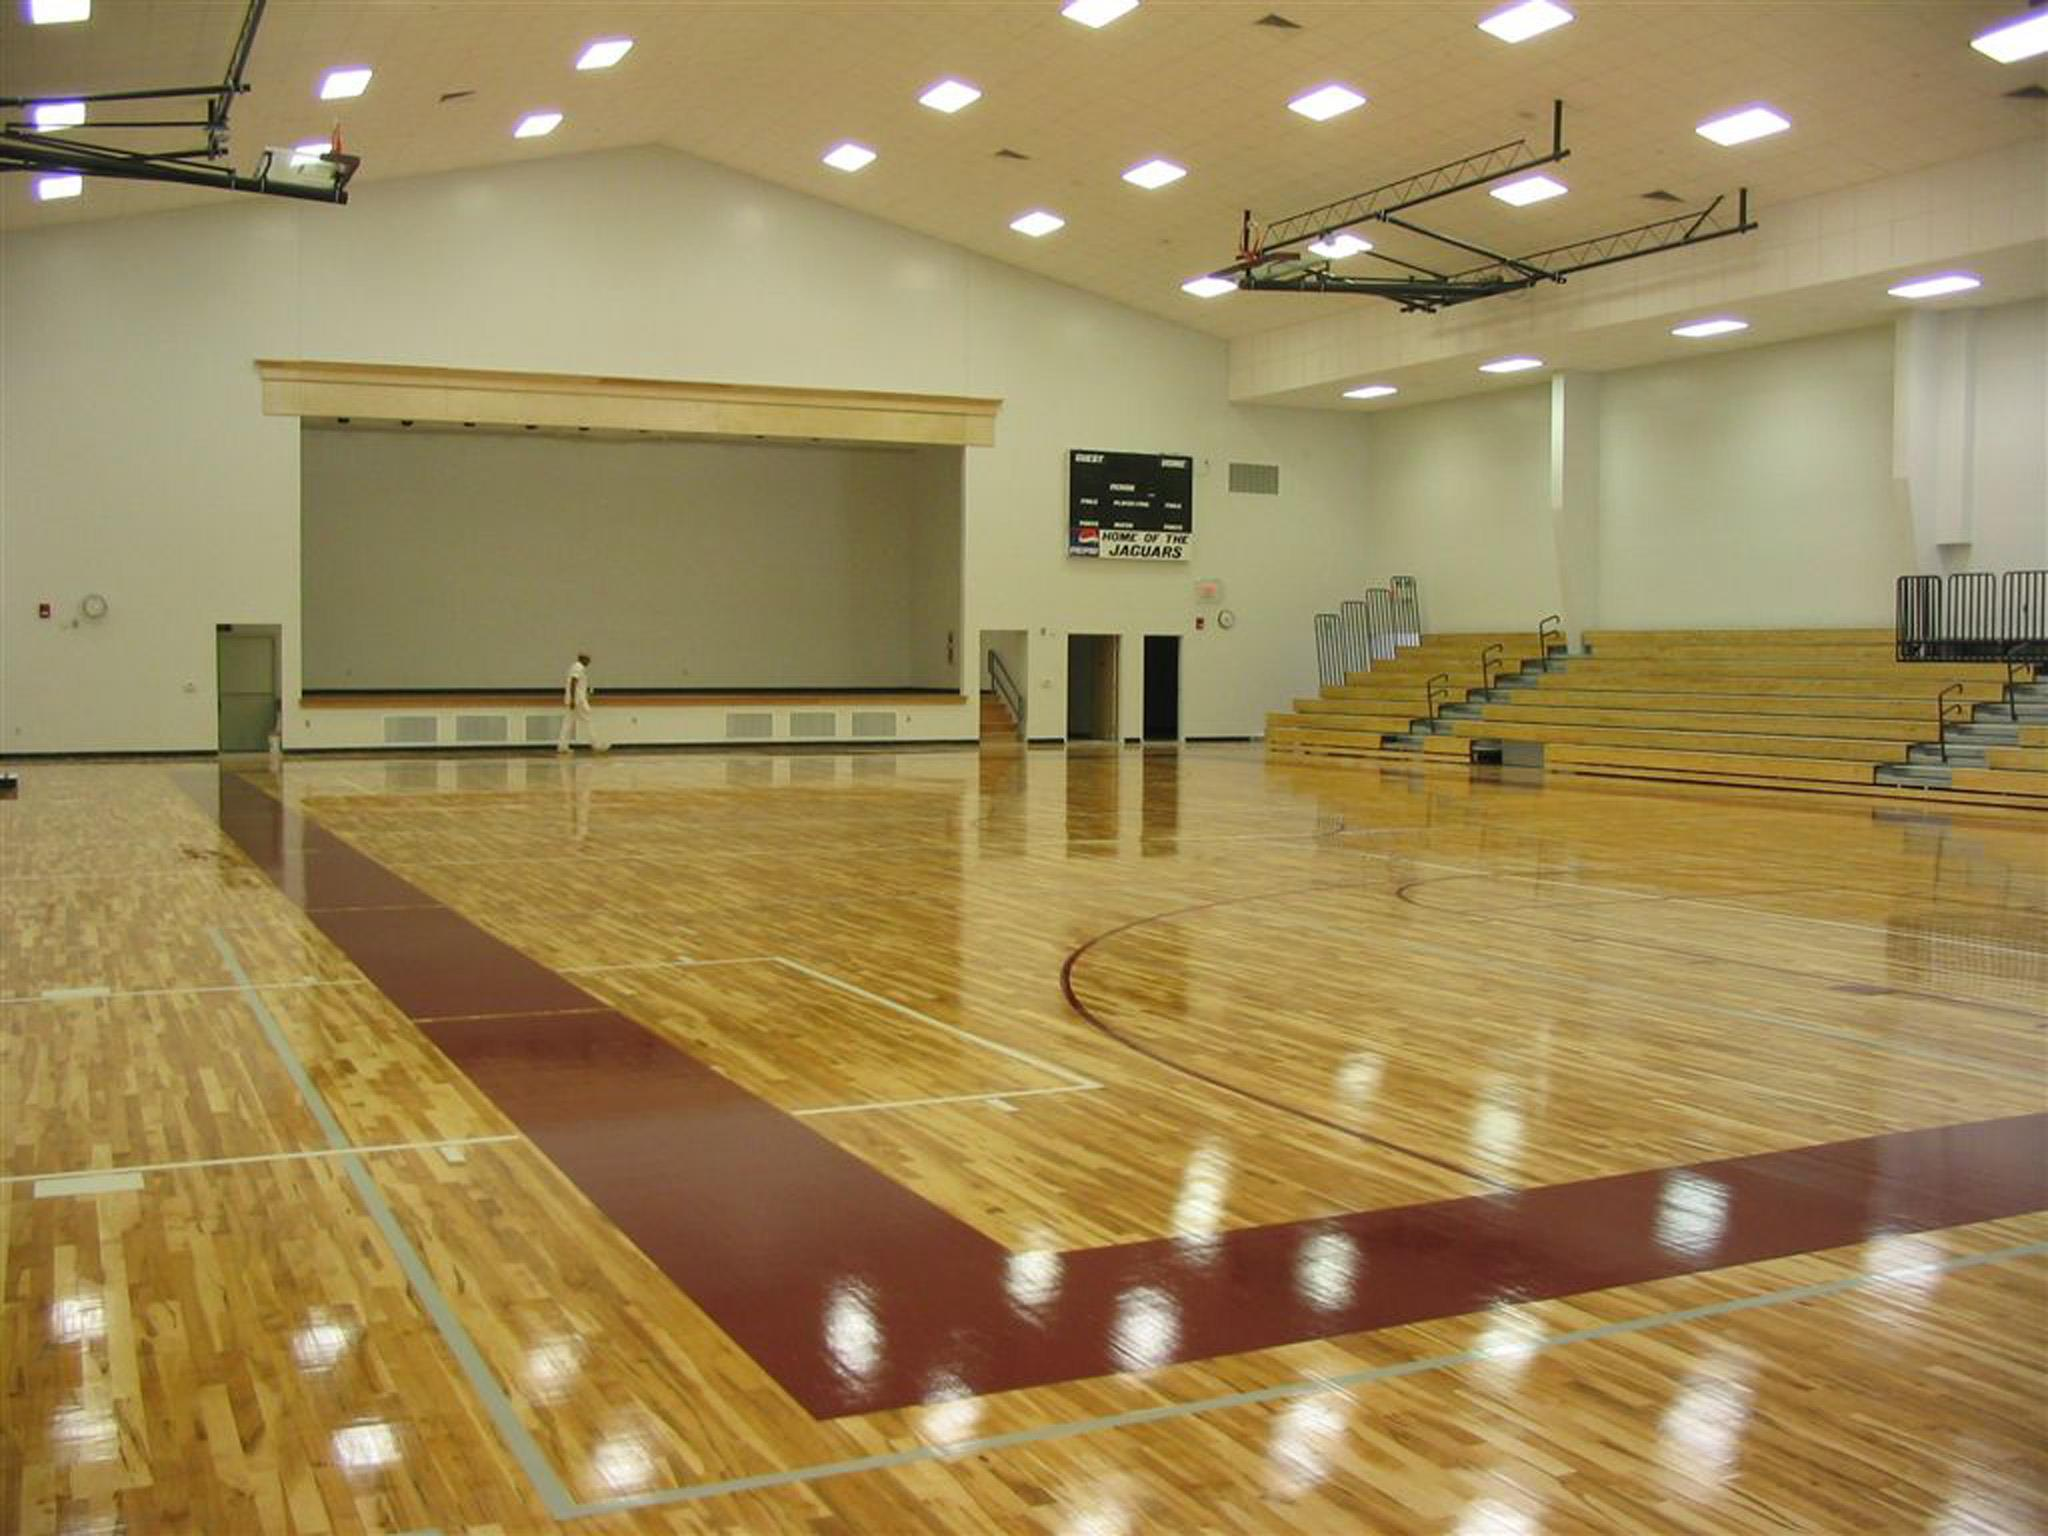 hardwood sports flooring by Connor Sports